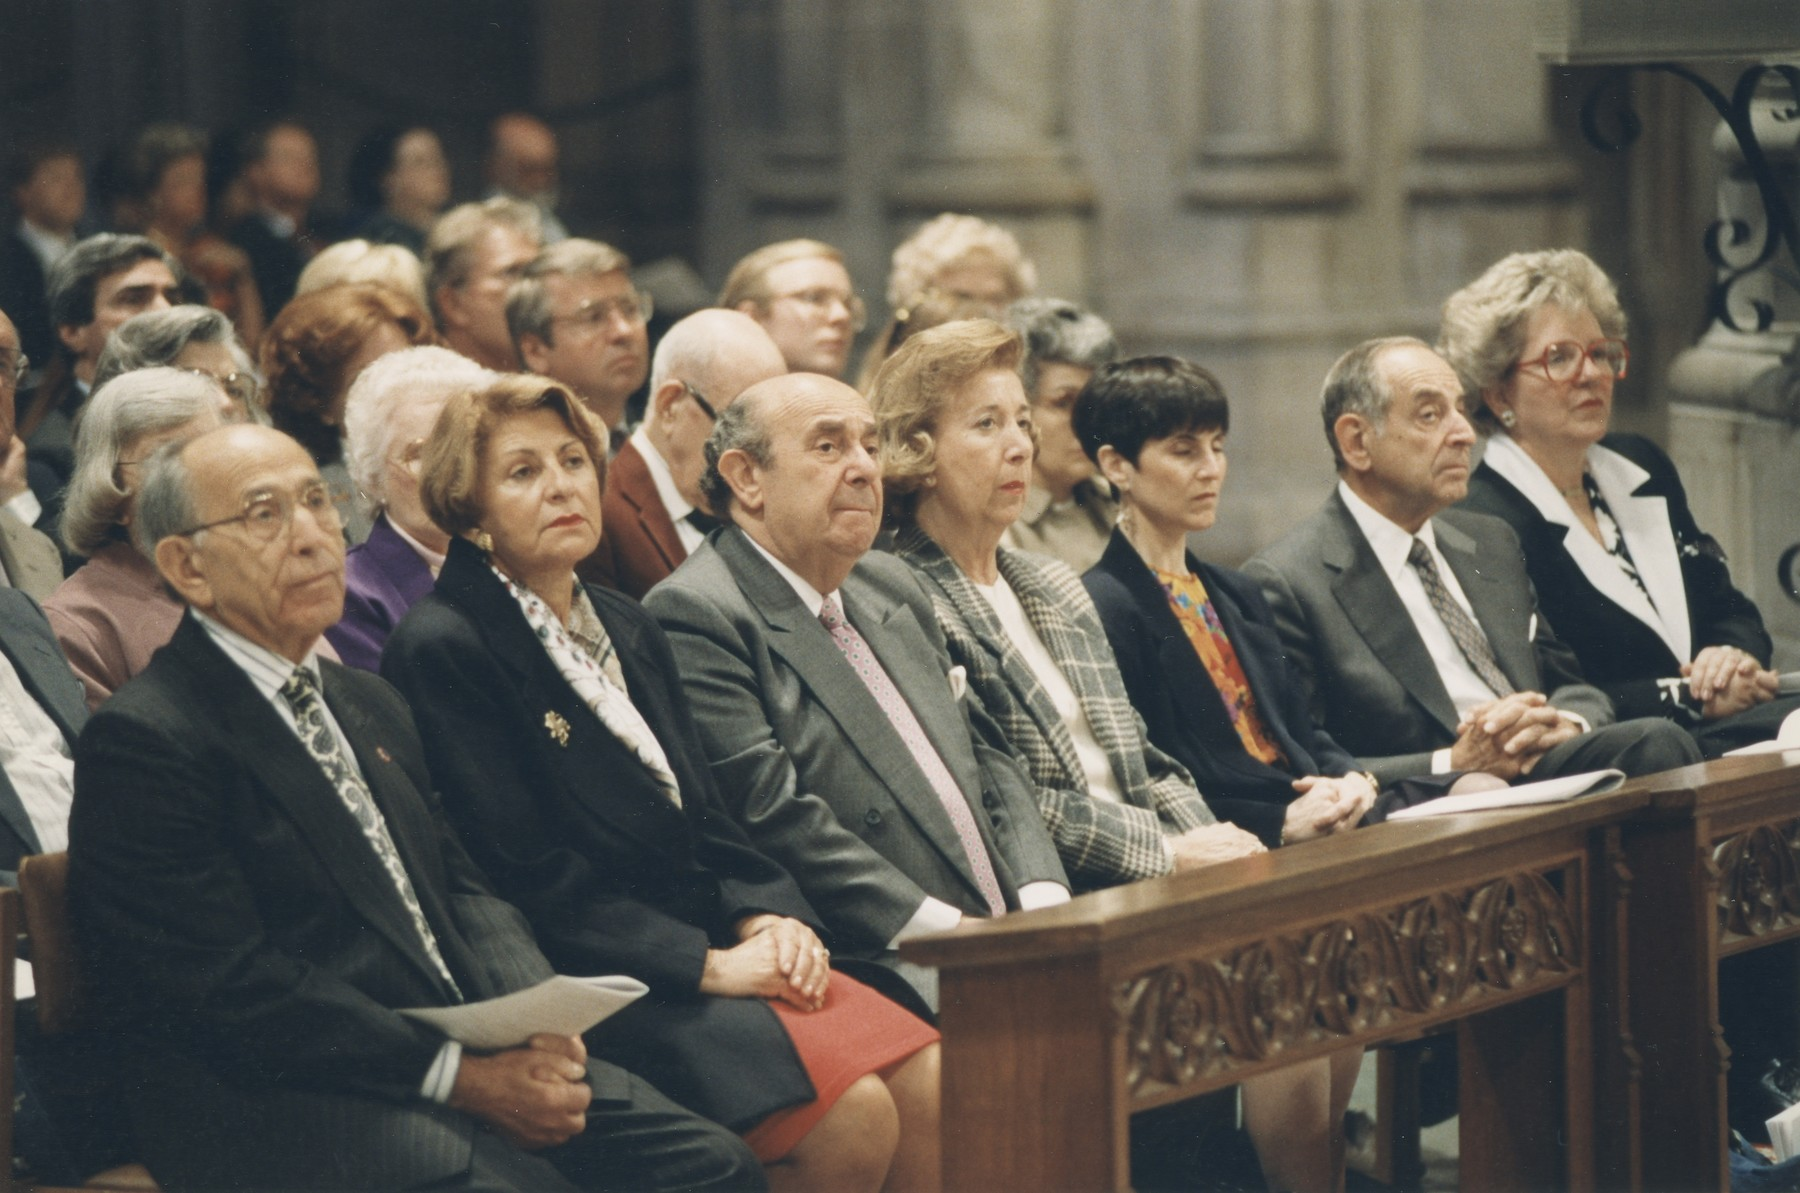 Members of the U.S. Holocaust Memorial Council attend the Special Ecumenical Service at the National Cathedral in Washington, D.C. held on April 18, 1993 to commemorate the opening of the Museum.    Senator John Danforth of Missouri, an Episcopal priest, delivered a sermon against bigotry.  Rabbi Michael Berenbaum, Director of the USHMM Research Institute also participated in the interfaith service.  Among those pictured in the front row are: Miles and Chris Lerman (first and second on the left), William Lowenberg (third from the left) and Harvey Meyerhoff (second from the right).